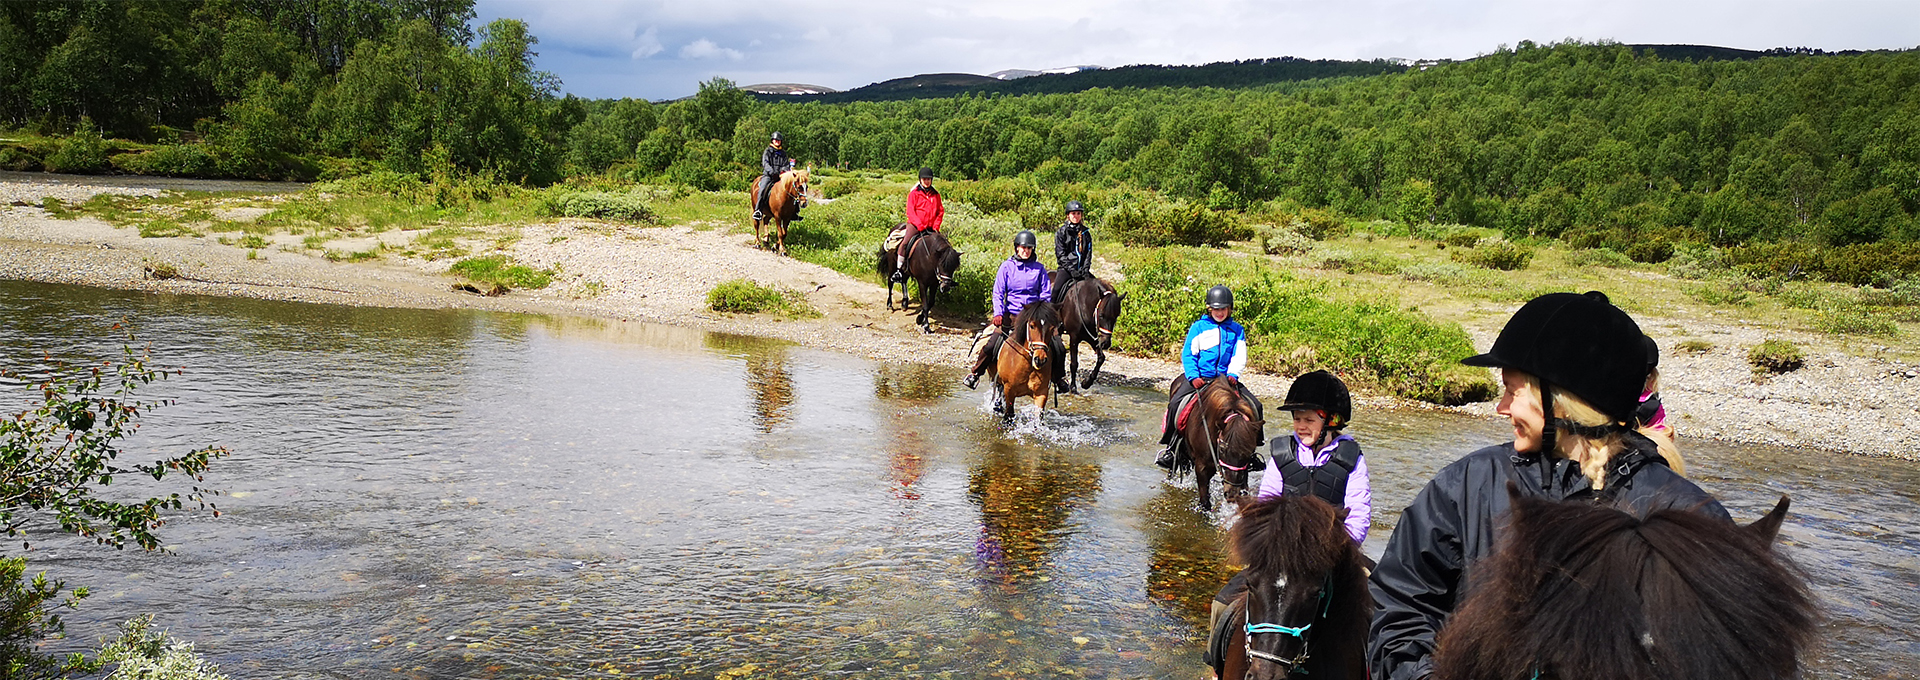 Riders on Icelandic horses in Ramundberget